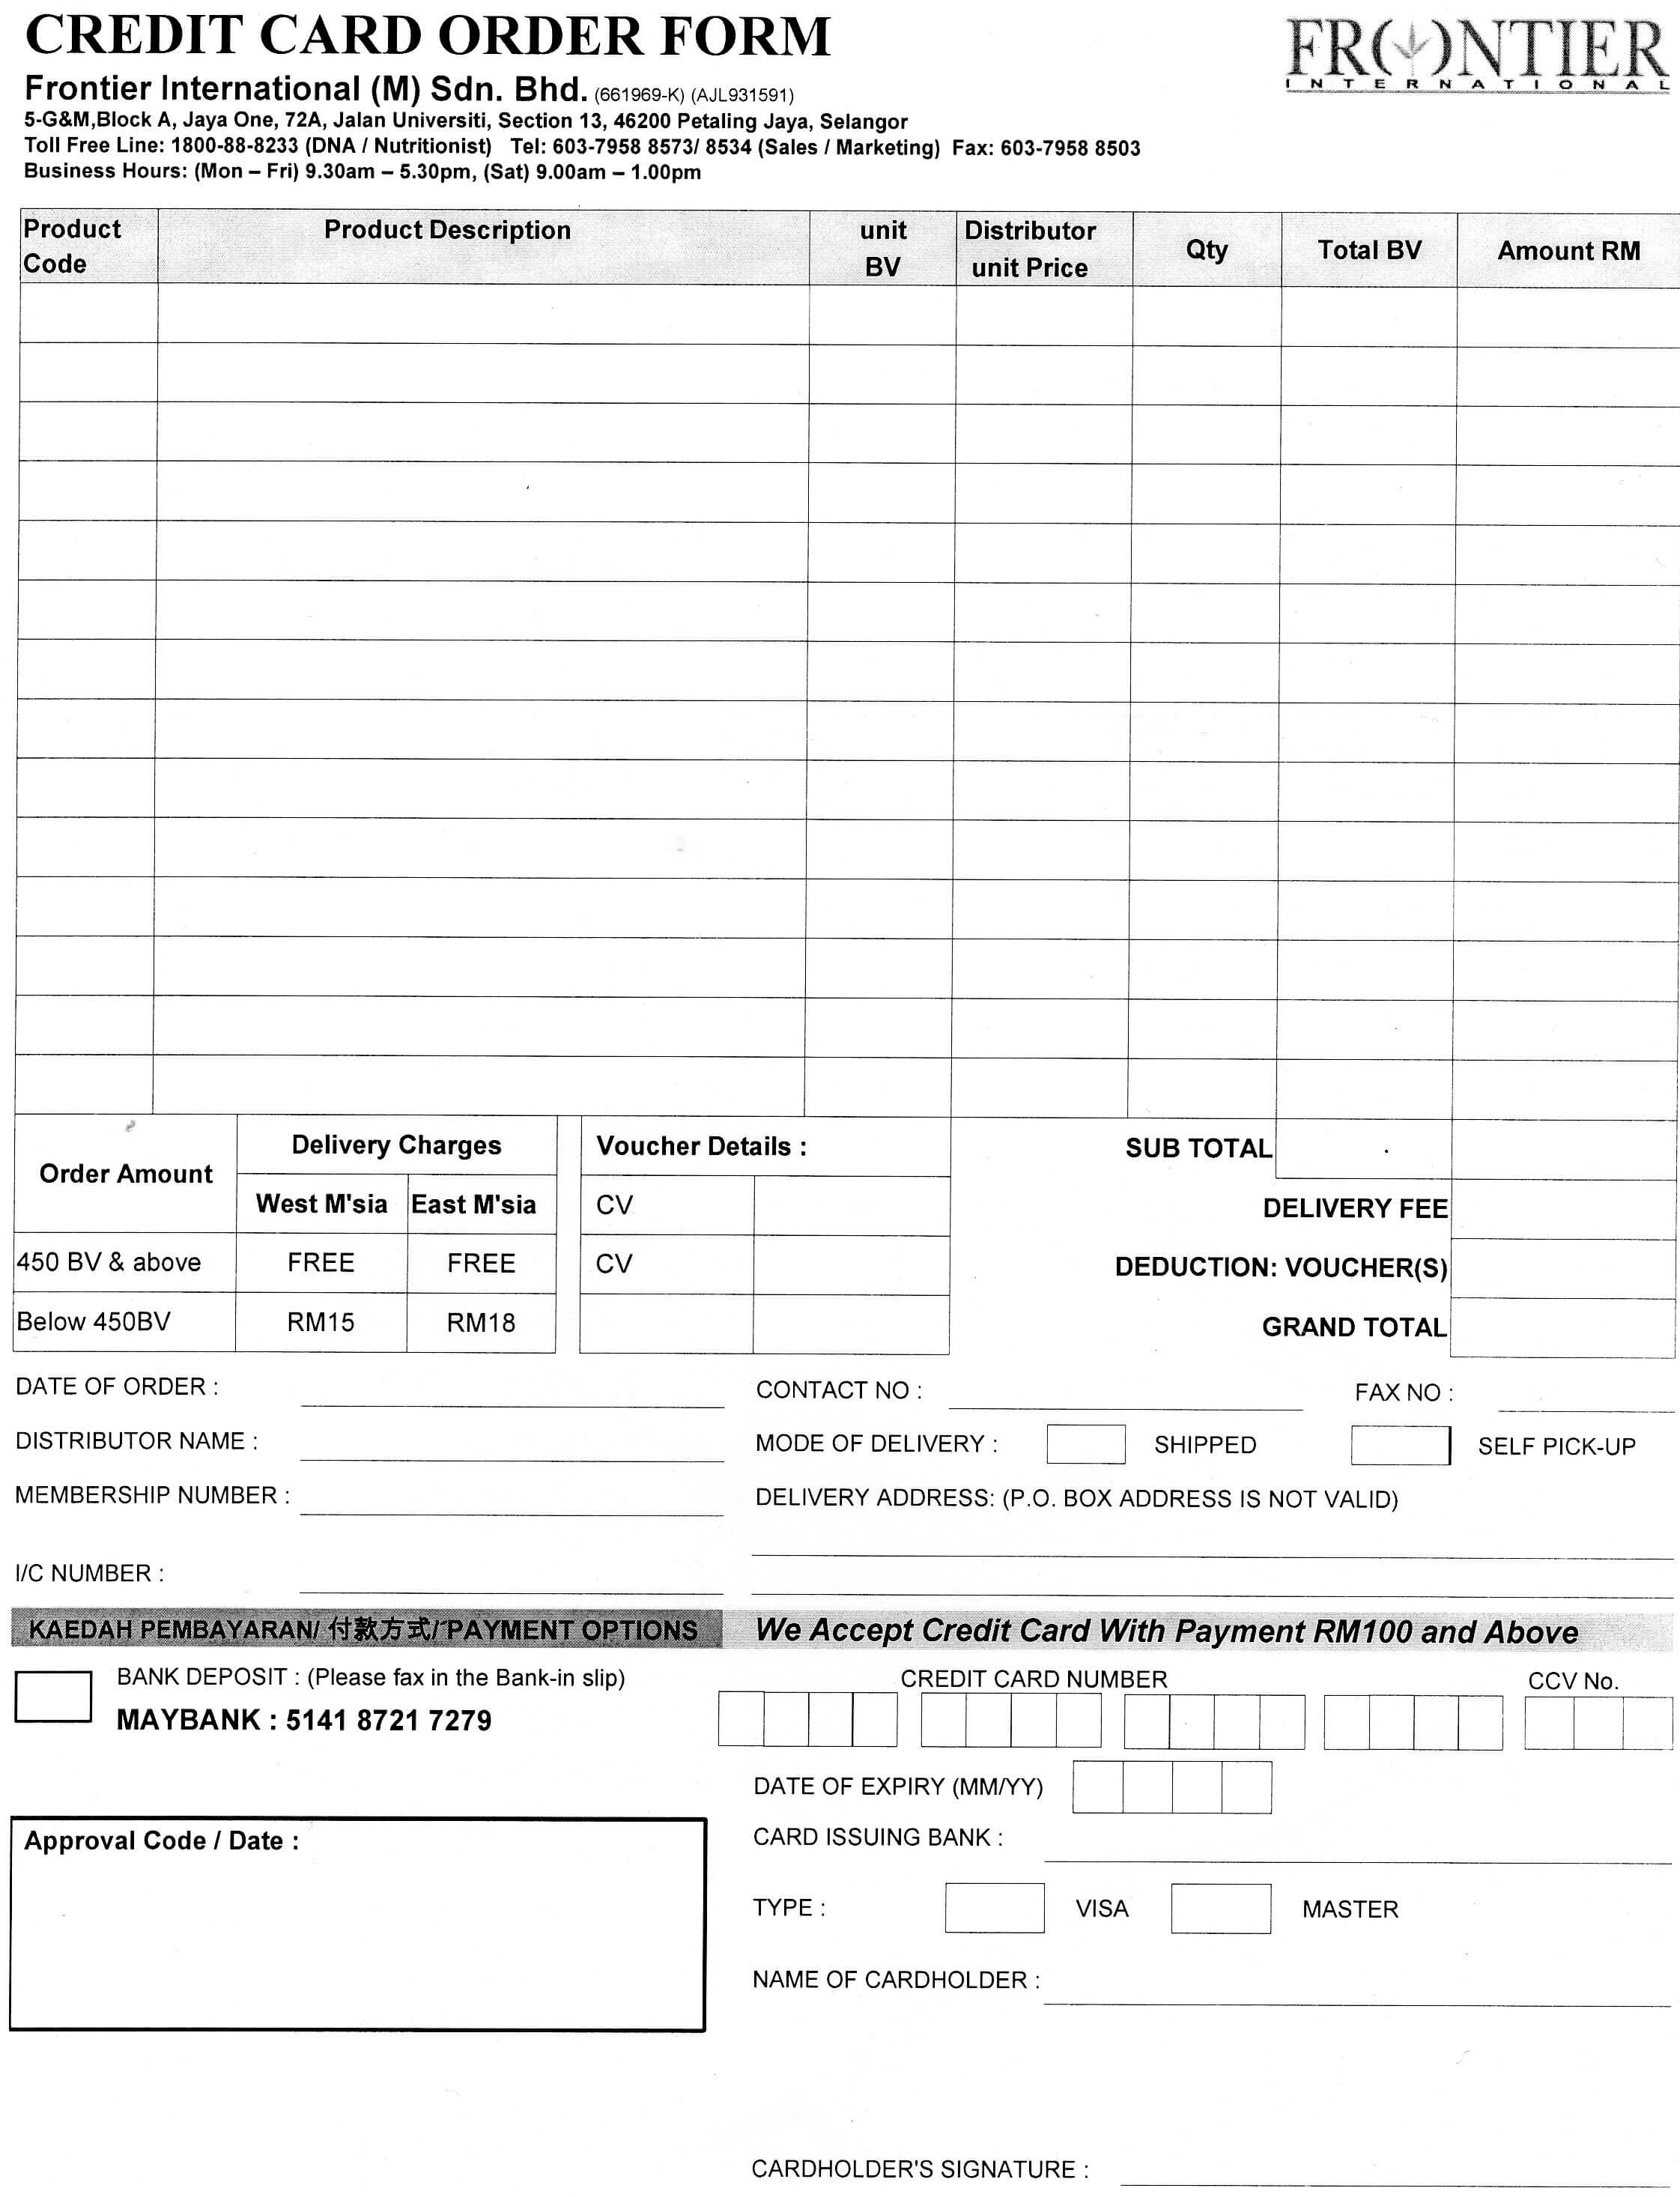 Credit Card Order Form Template ] - Credit Card Order Form with regard to Order Form With Credit Card Template